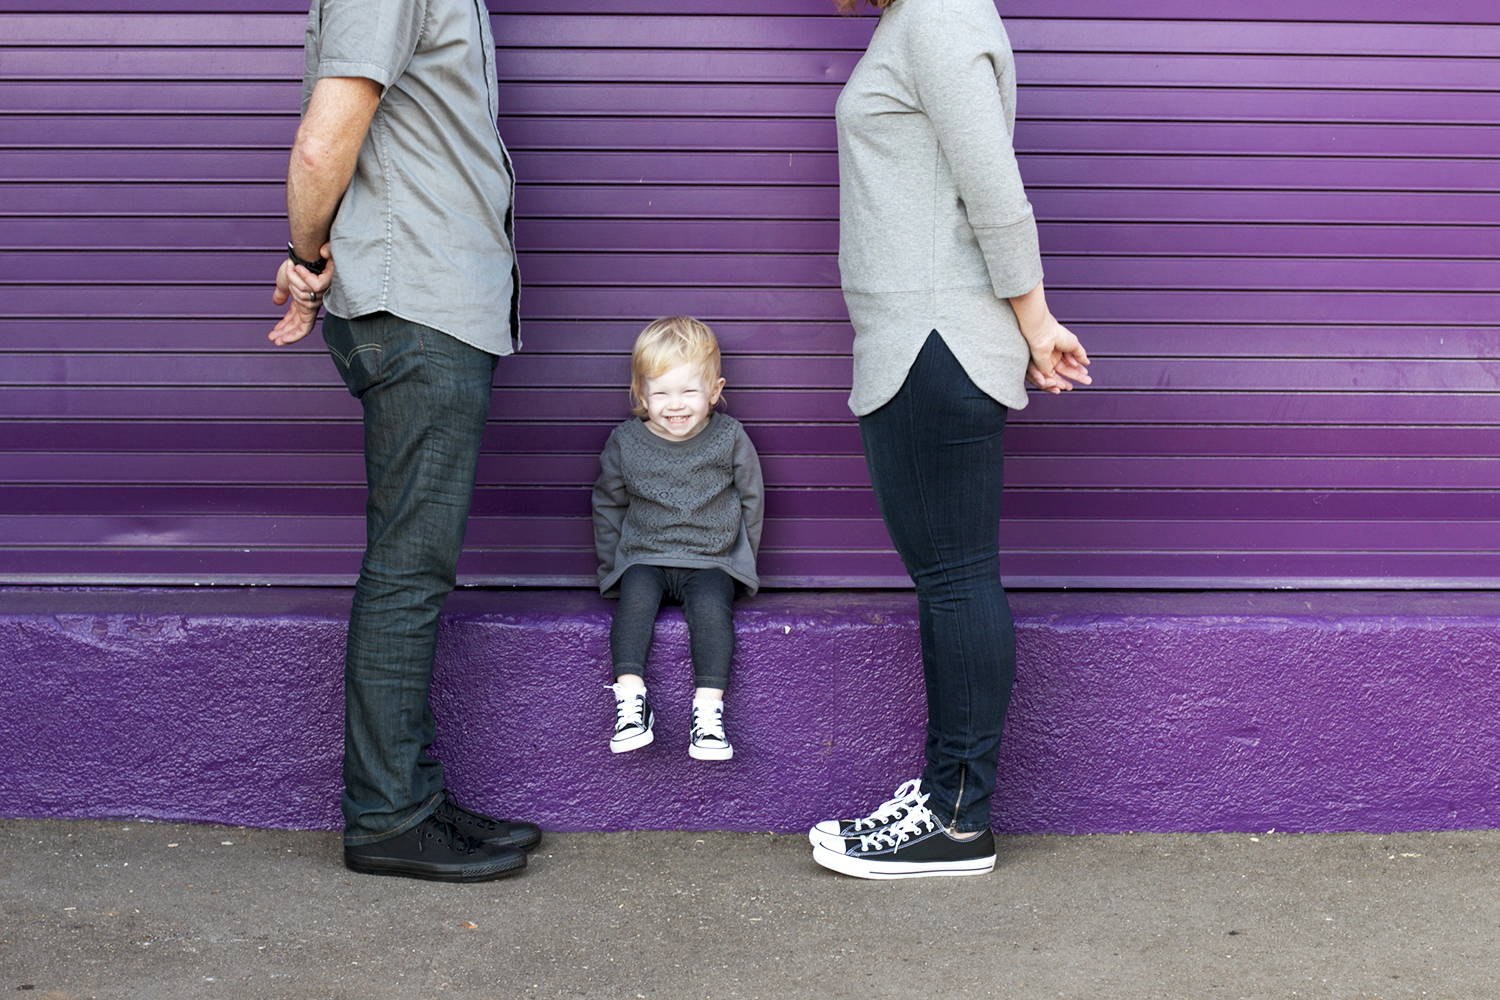 These casual sneakers are PERFECT for family photos outfits! What a great way to show what your family ACTUALLY wears!